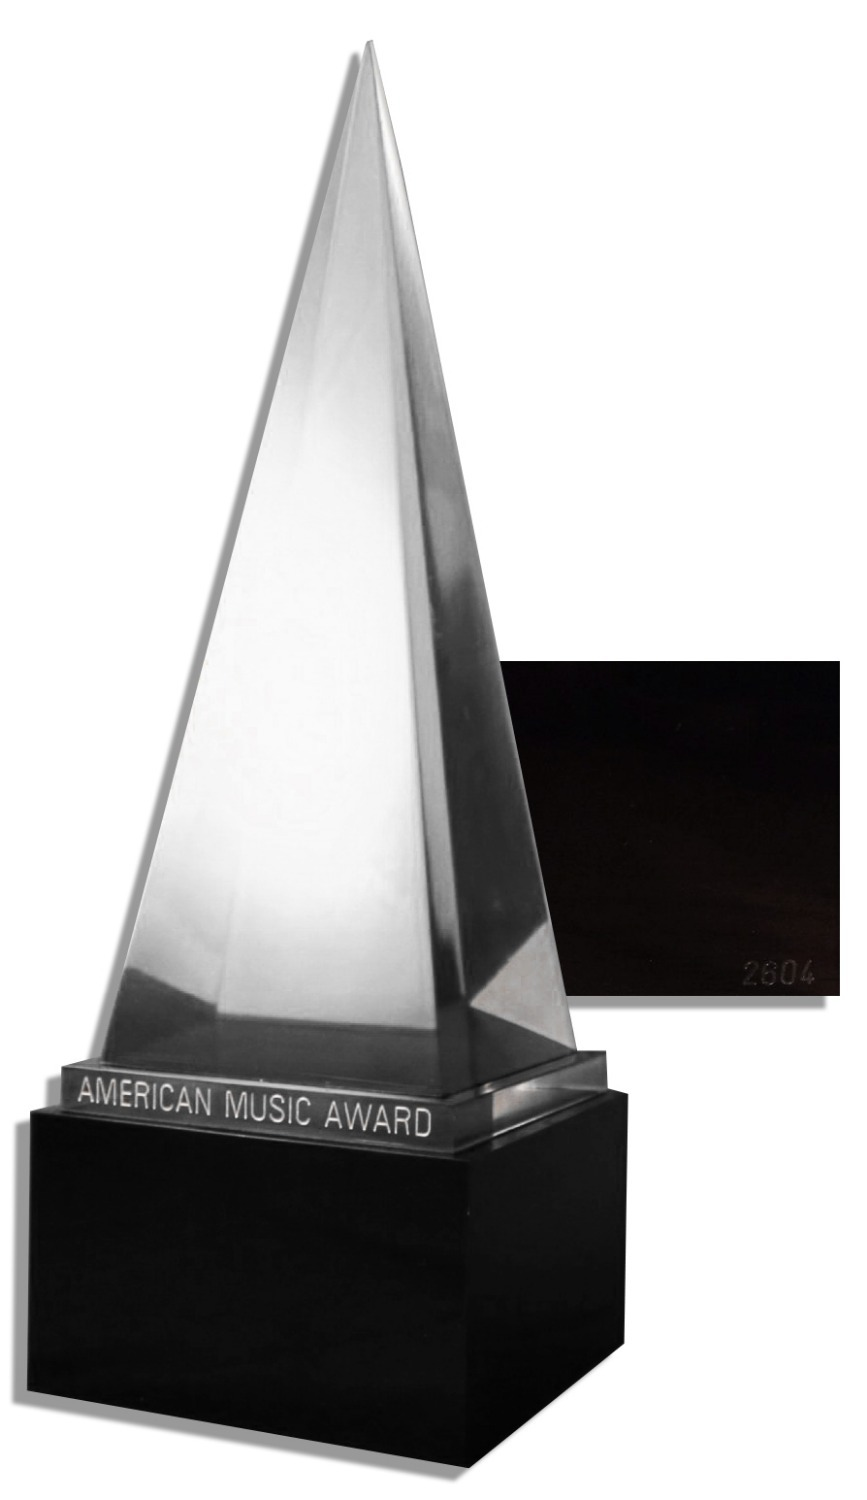 The American Music Awards Crystal Pyramid Trophy by AMAs 1:1 Real Size Free Shipping